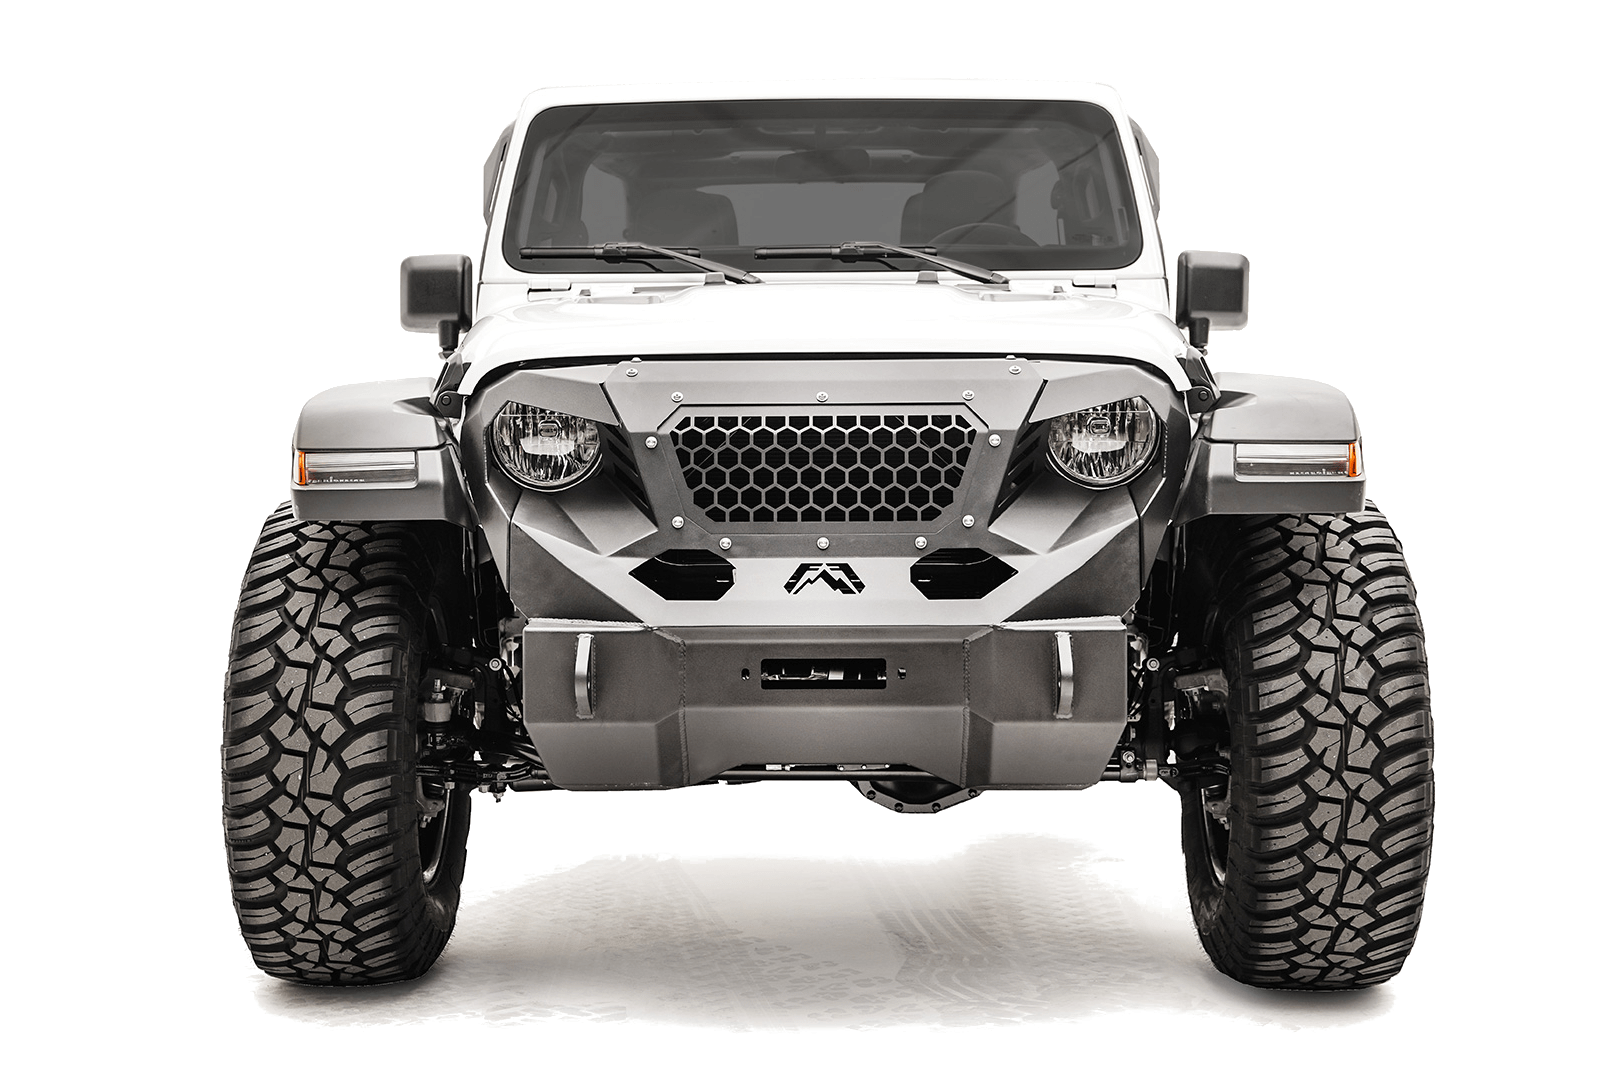 Fabfours Jeep Gladiator Grumper front bumper.